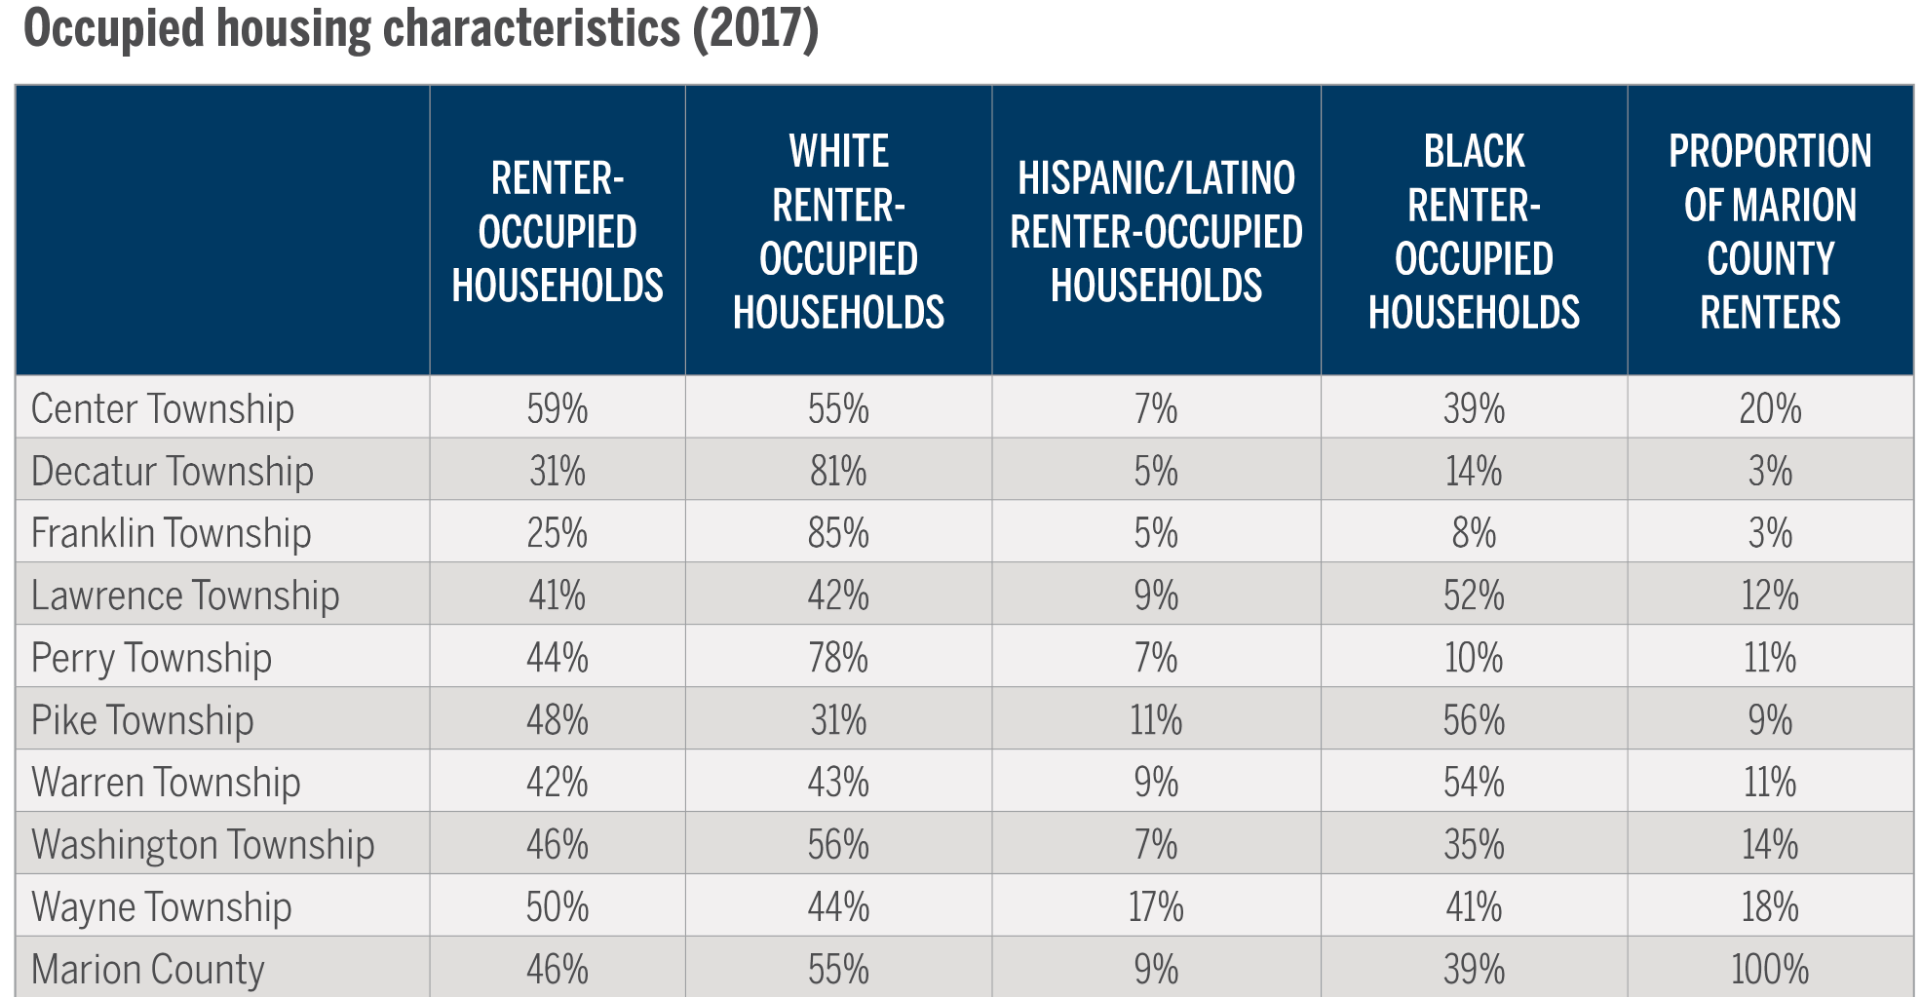 Information on Renter-occupied households in Marion County